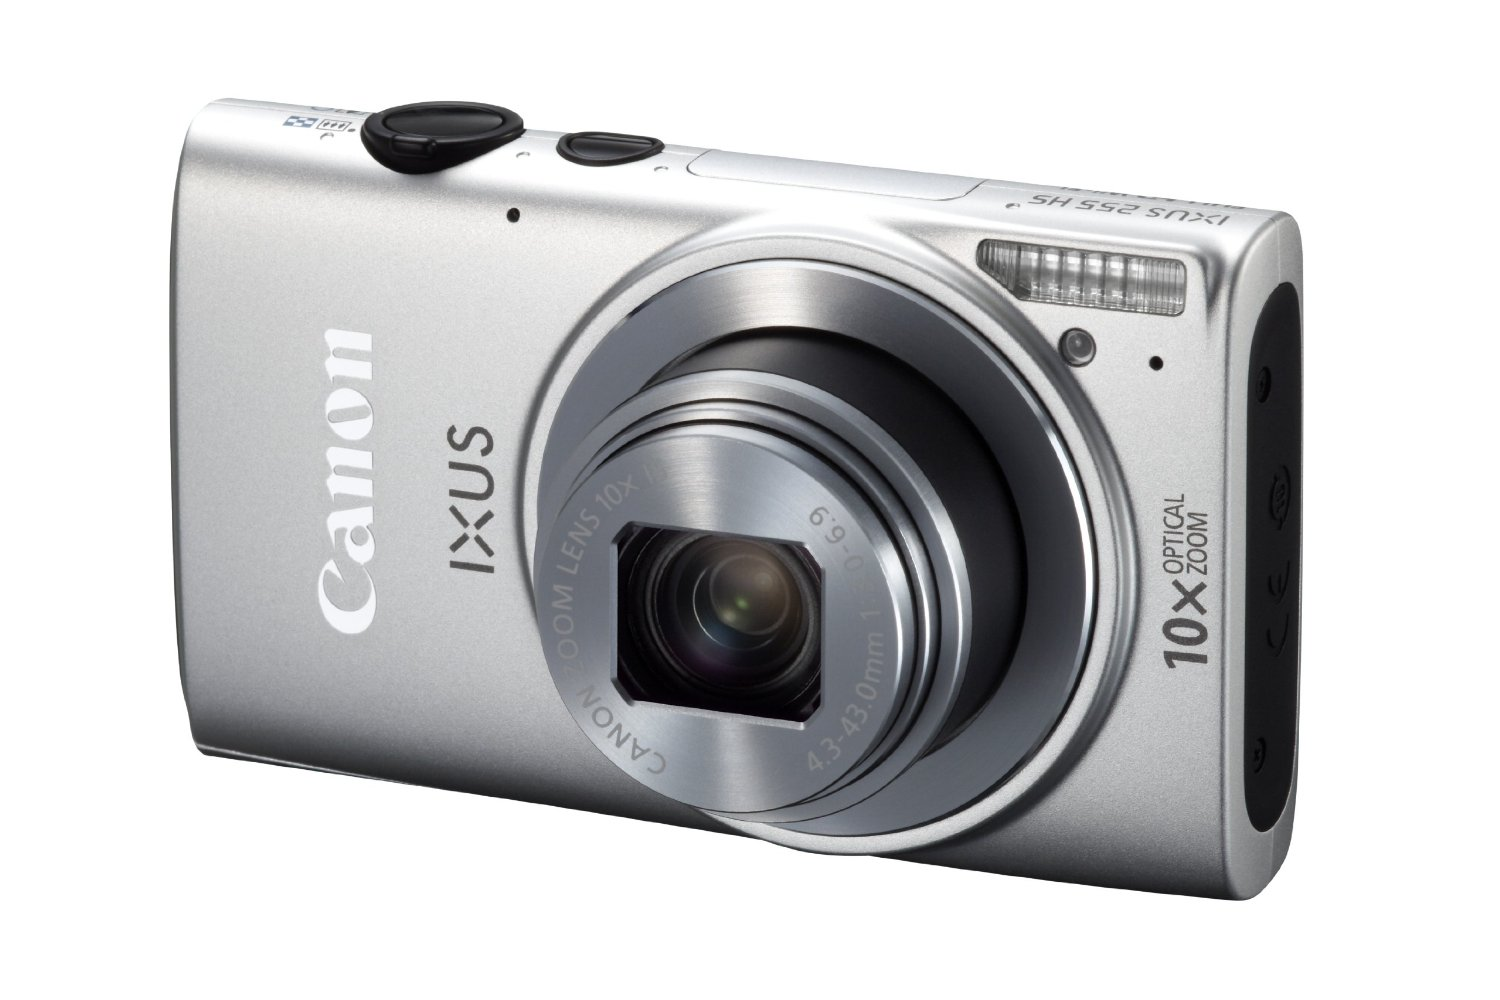 Canon IXUS 255 HS in the Test